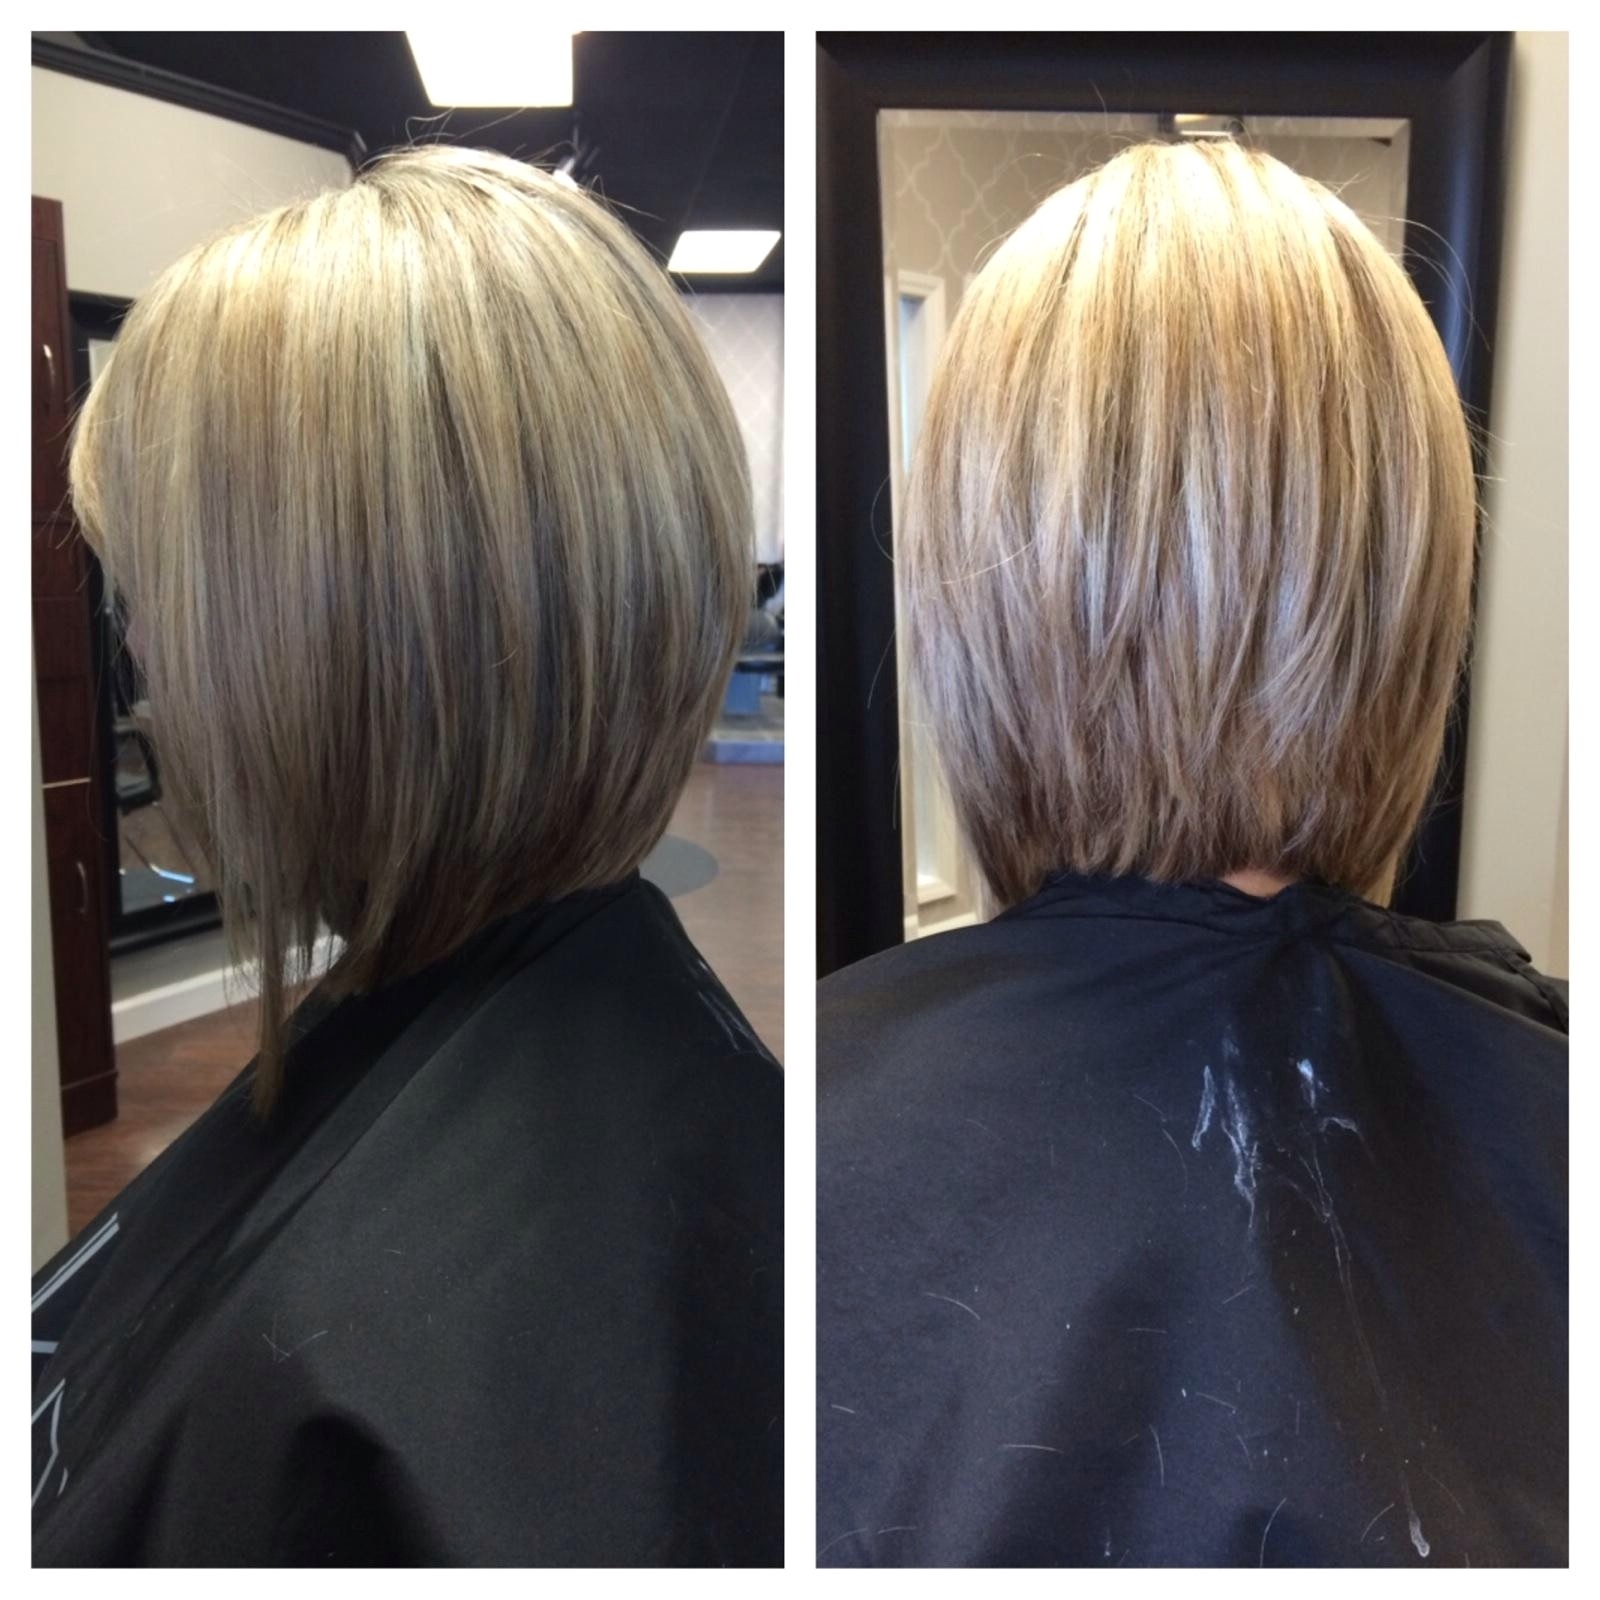 inverted bob pictures show front and back view